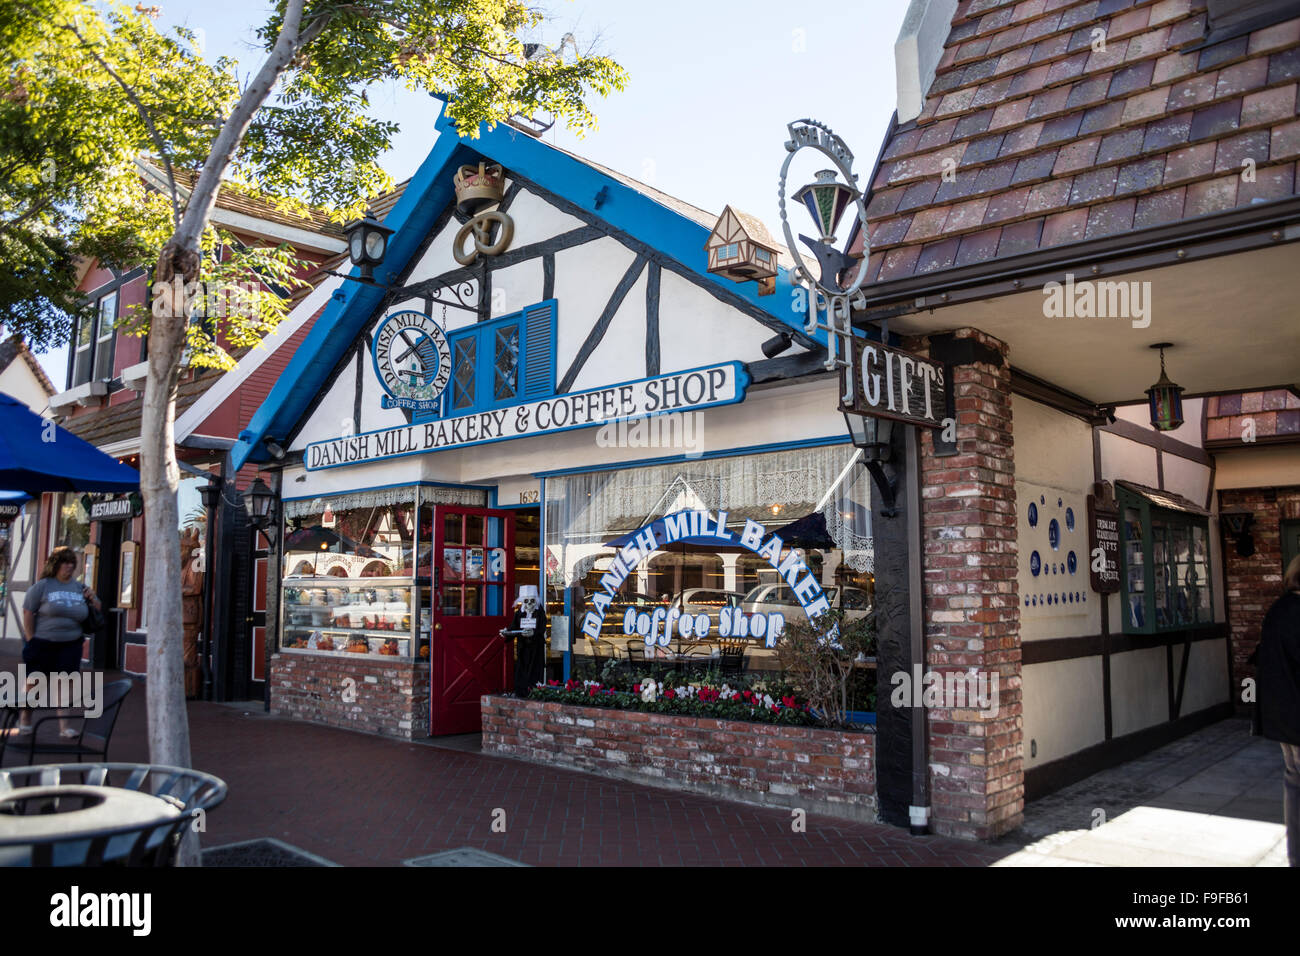 Danish Mill Coffee Shop, Copenhagen Drive, Solvang, Ynez Valley, Santa Barbara County, California, USA. - Stock Image